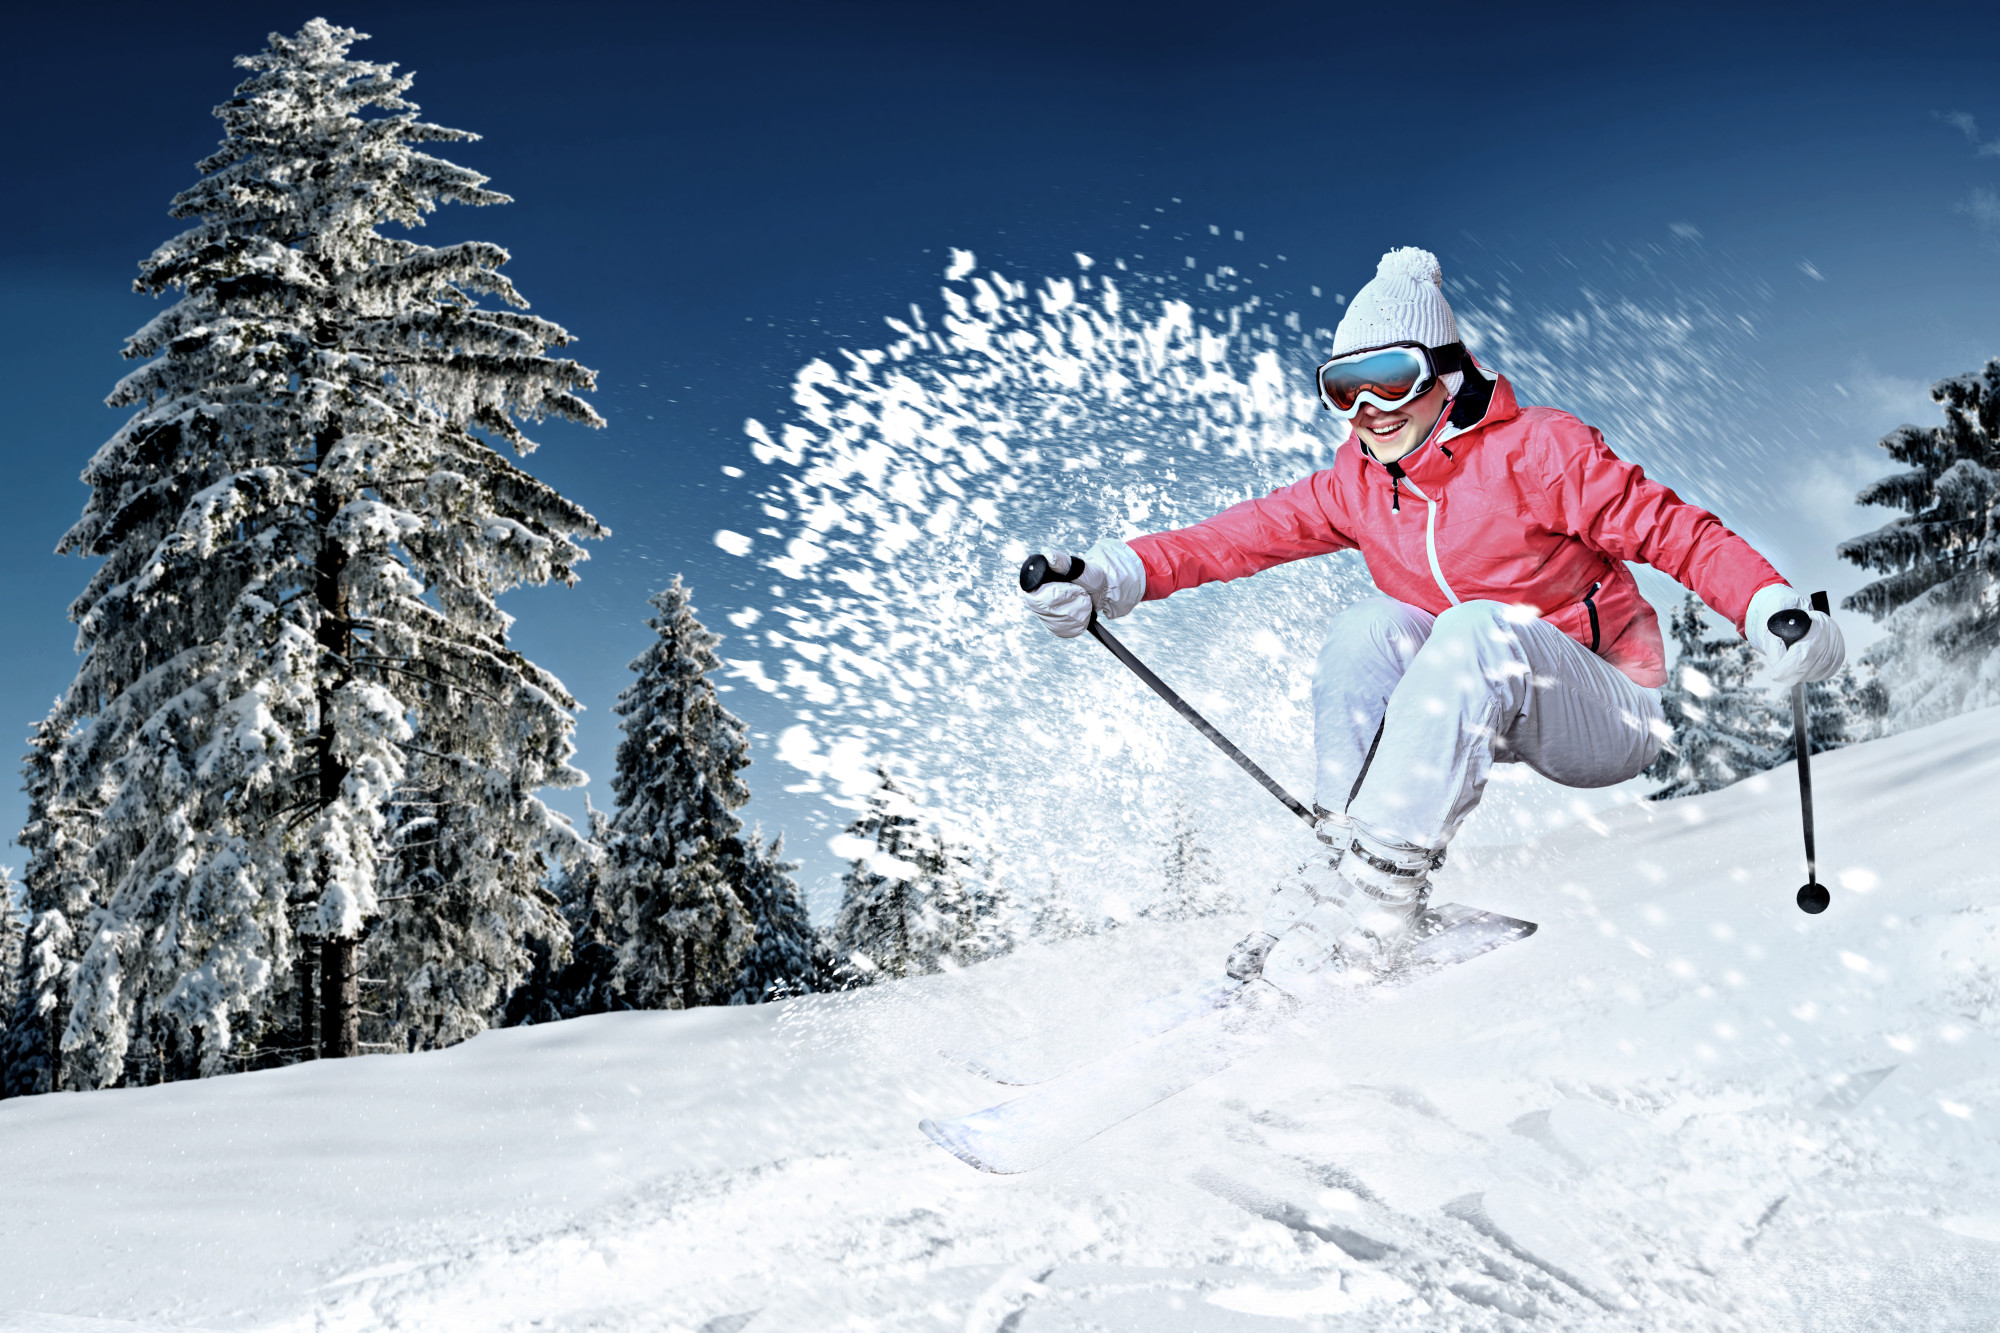 Vacation on the Snow: 12 Best Ski Resorts in the US and Canada